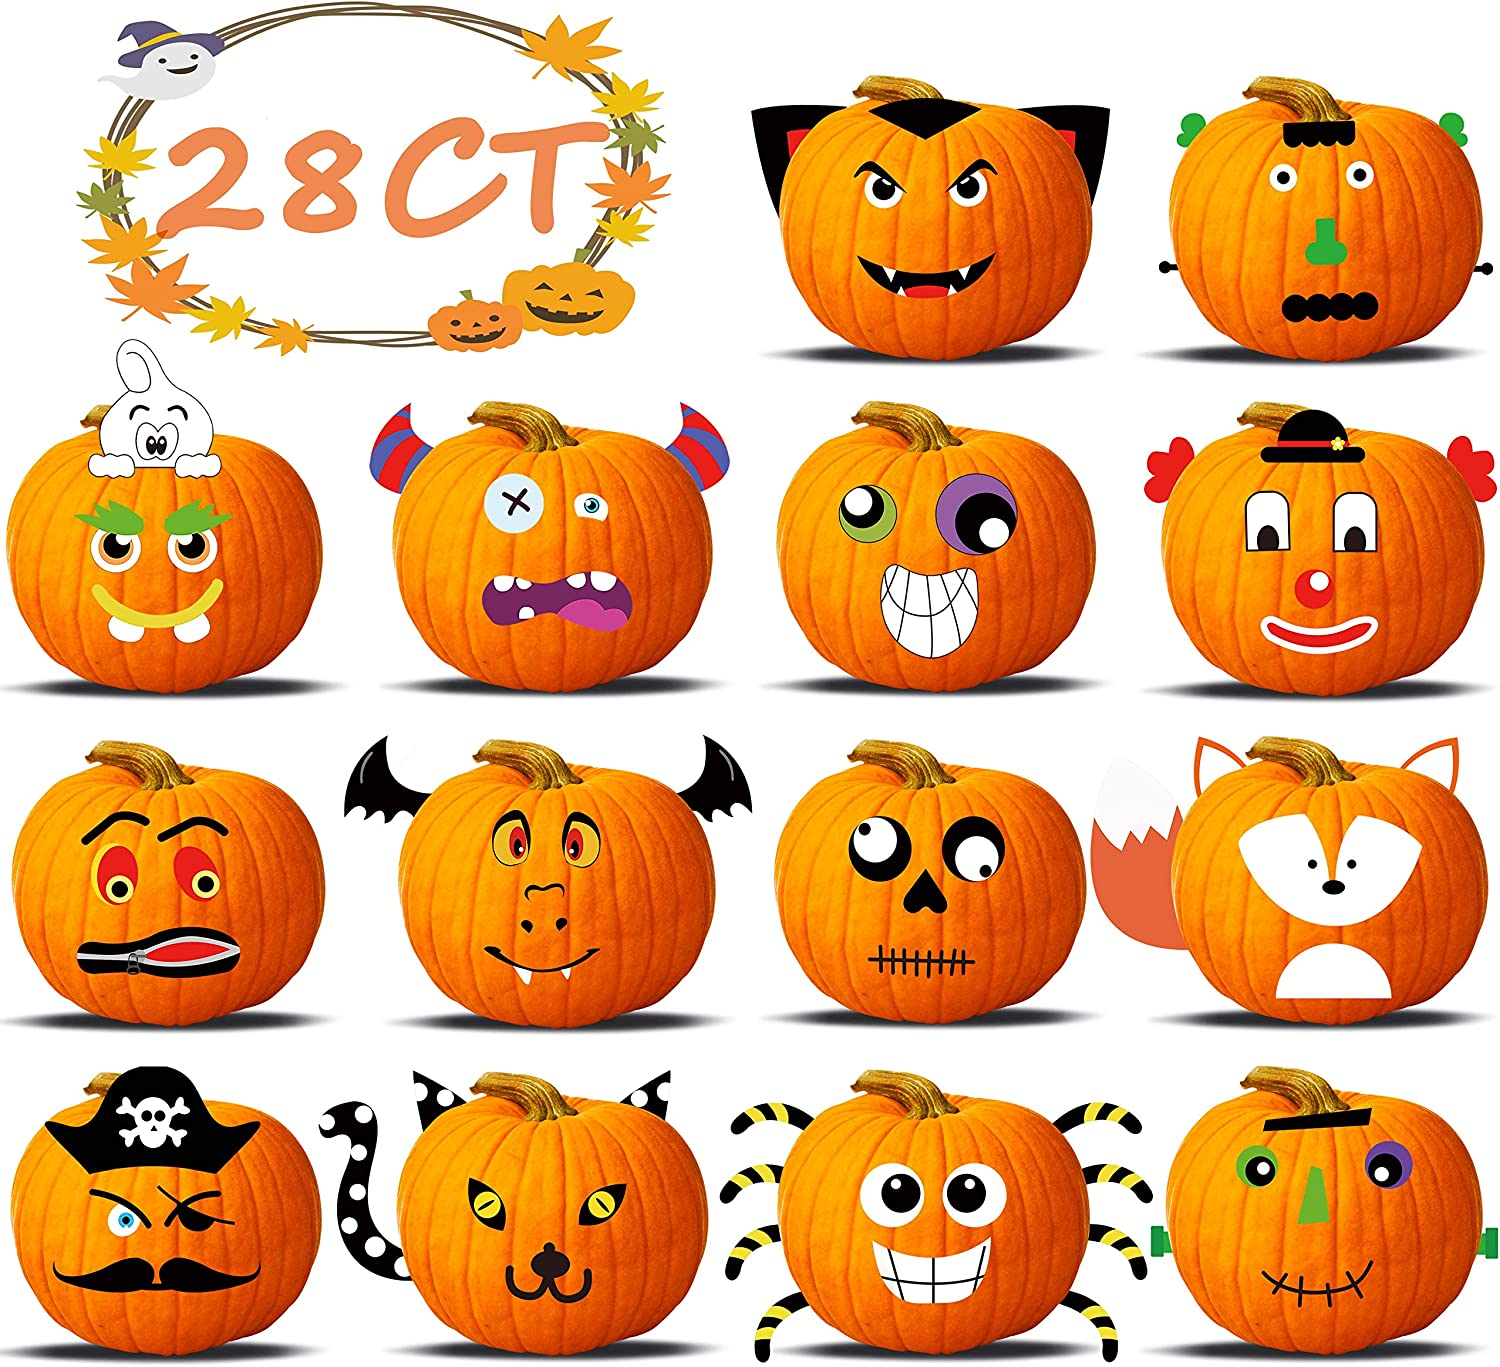 28Ct Halloween Pumpkin Decorating Crafts - Make Your Own 3D Jack-O-Lantern Face Decoration Foam Cutout Trick or Treat Party Favors